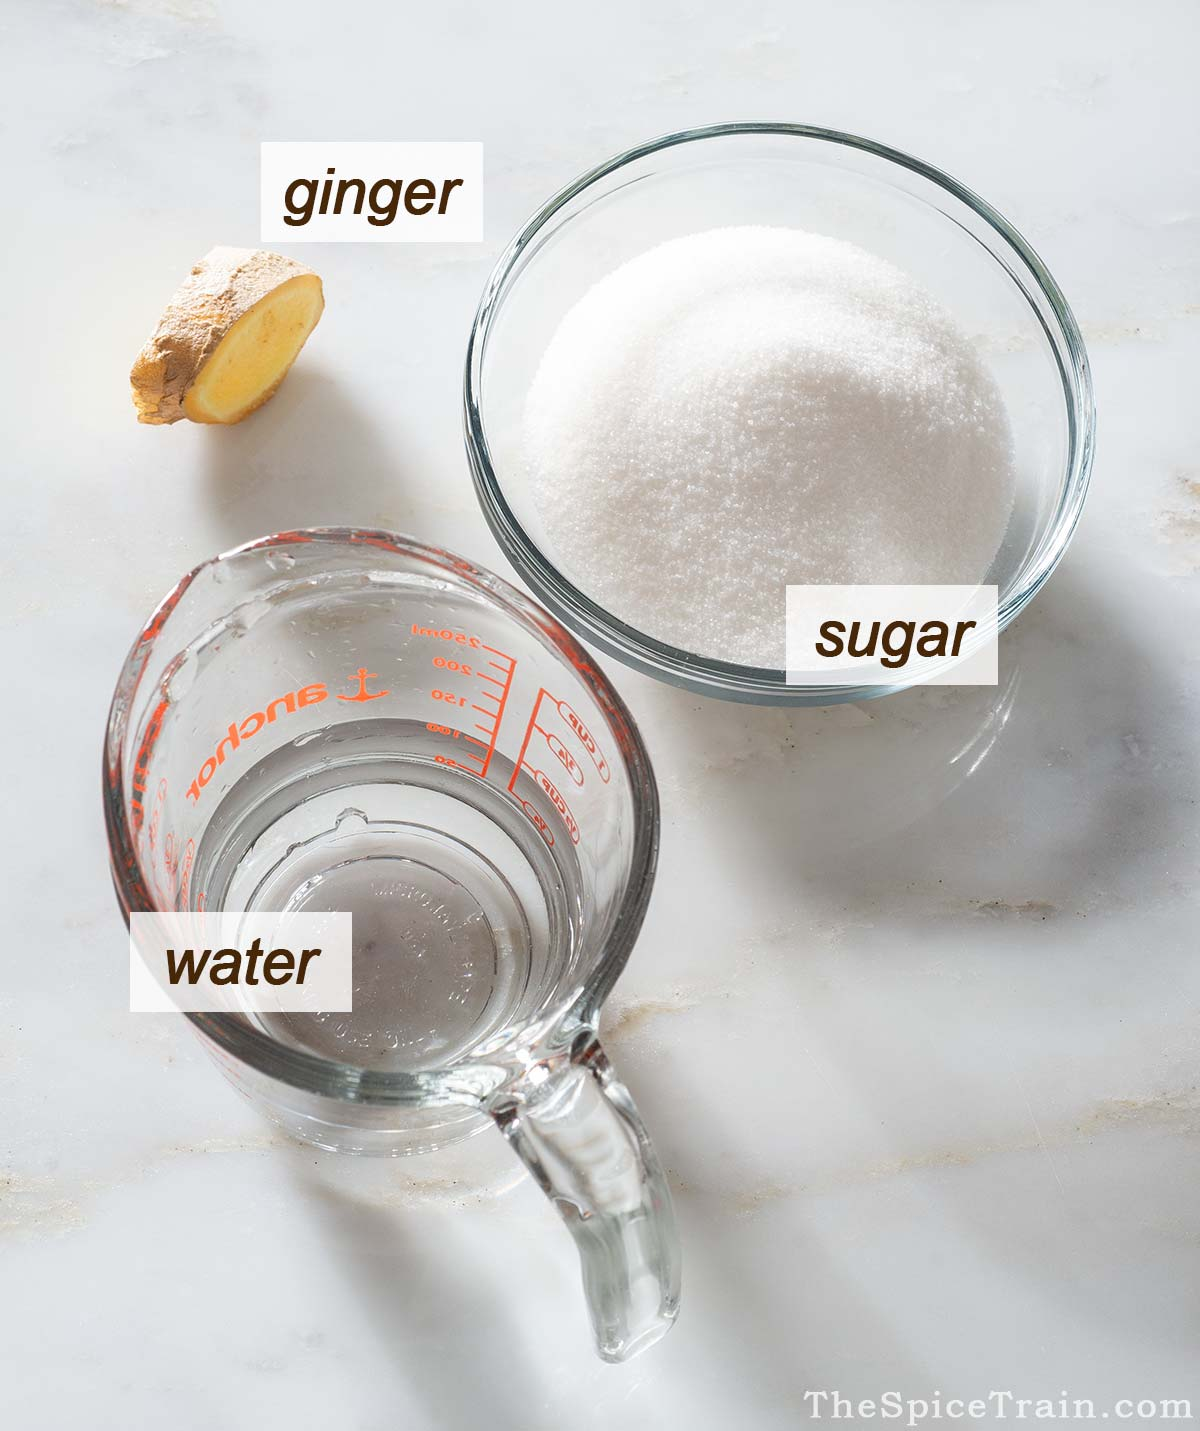 Ginger, sugar and water on a kitchen counter.